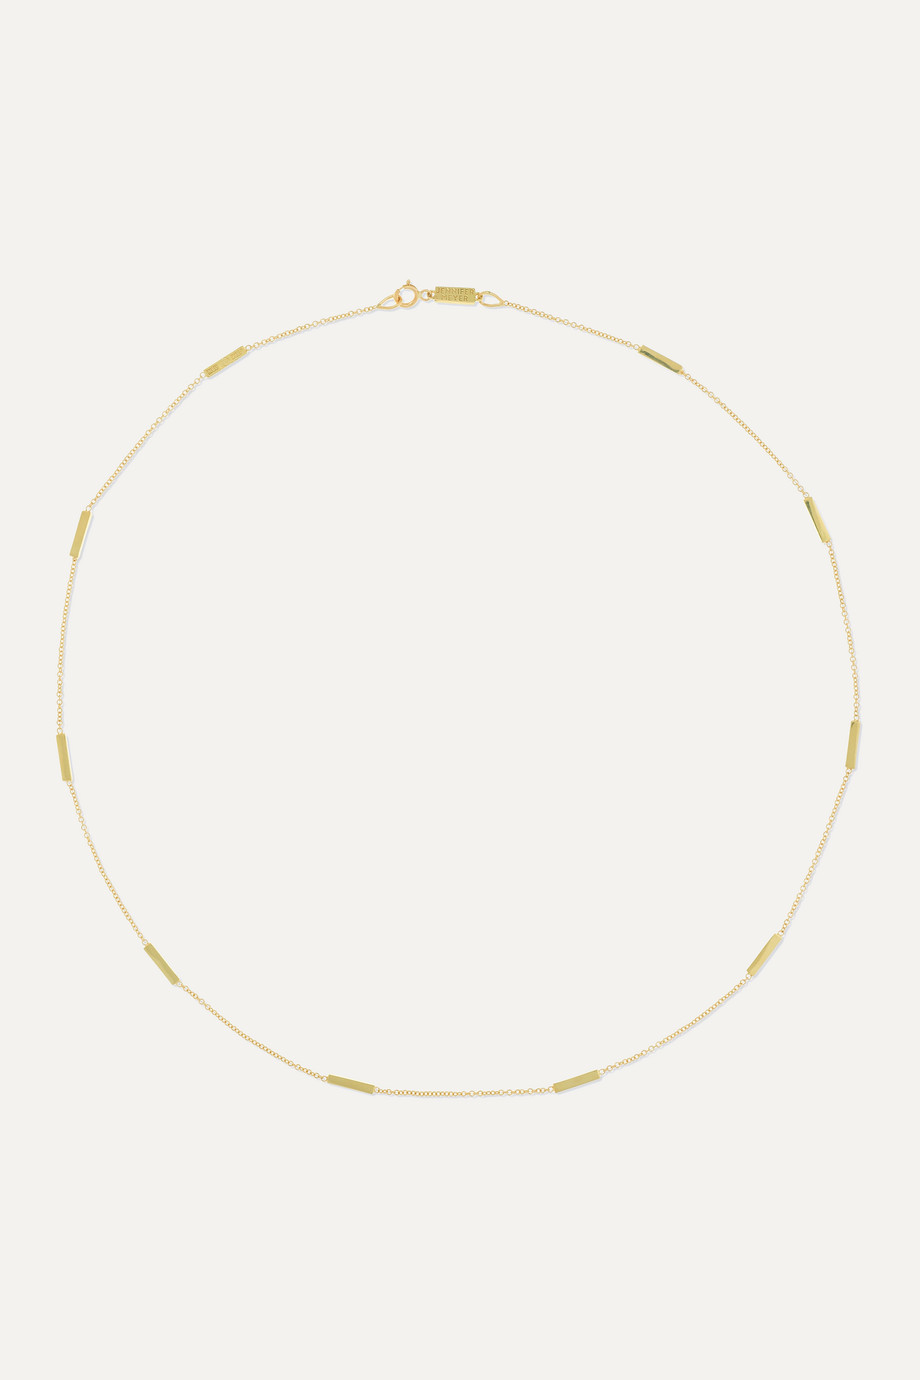 JENNIFER MEYER Bar-By-the-Inch 18-karat gold necklace